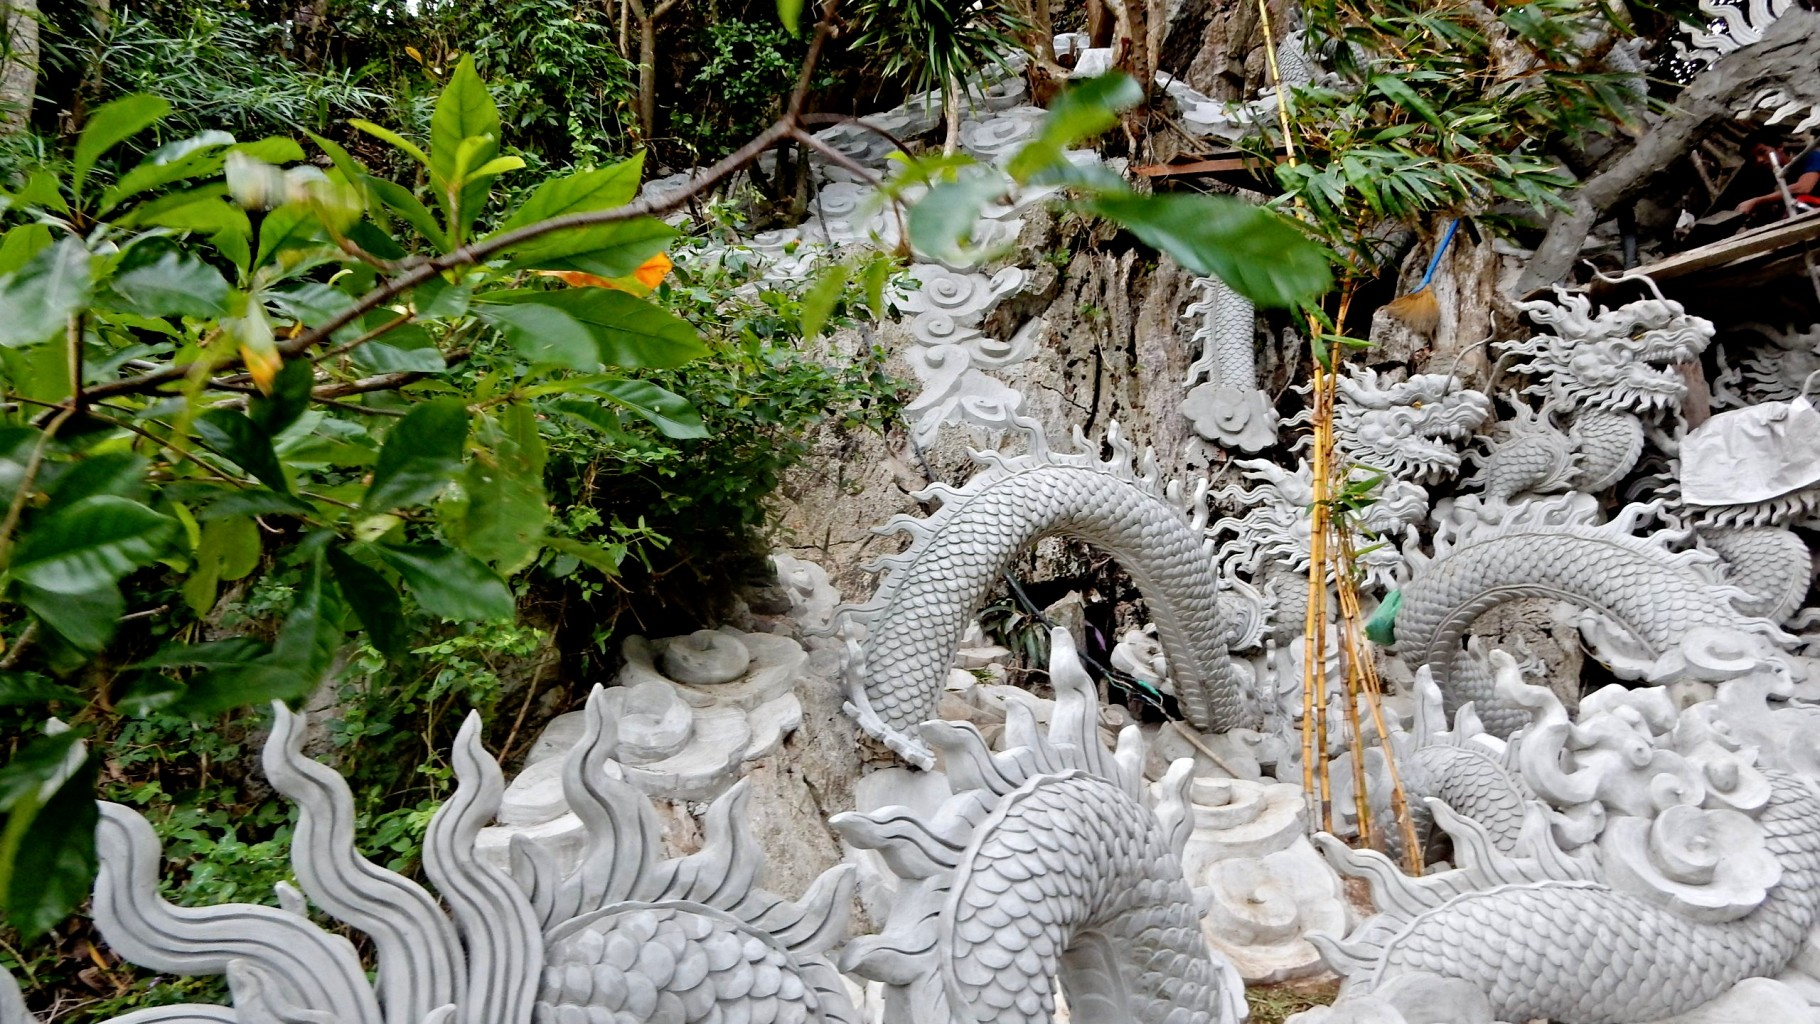 Dragons on Marble Mountains